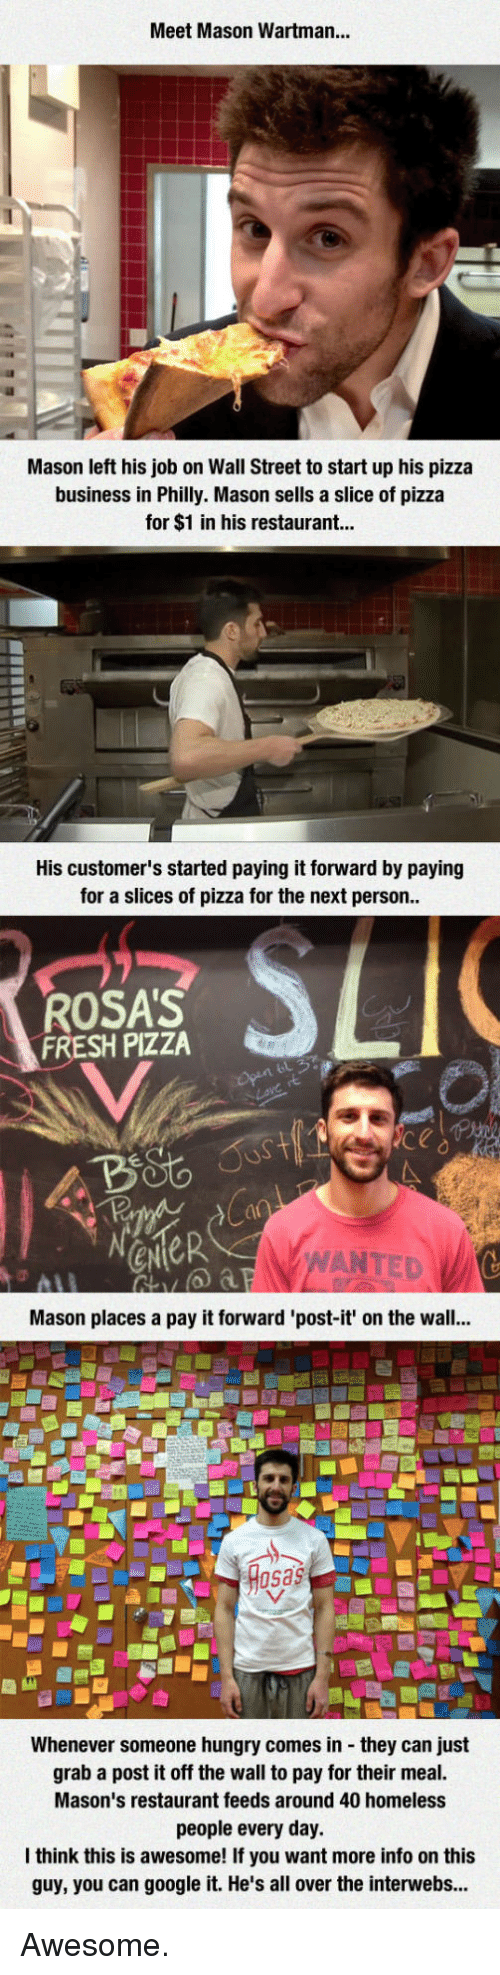 Fresh, Google, and Homeless: Meet Mason Wartman...  Mason left his job on Wall Street to start up his pizza  business in Philly. Mason sells a slice of pizza  for $1 in his restaurant...  His customer's started paying it forward by paying  for a slices of pizza for the next person  ROSA'S  FRESH PIZZA  ANTED  Mason places a pay it forward 'post-it' on the wall...  sas  Whenever someone hungry comes in they can just  grab a post it off the wall to pay for their meal.  Mason's restaurant feeds around 40 homeless  people every day.  think this is awesome! If you want more info on this  guy, you can google it. He's all over the interwebs... Awesome.